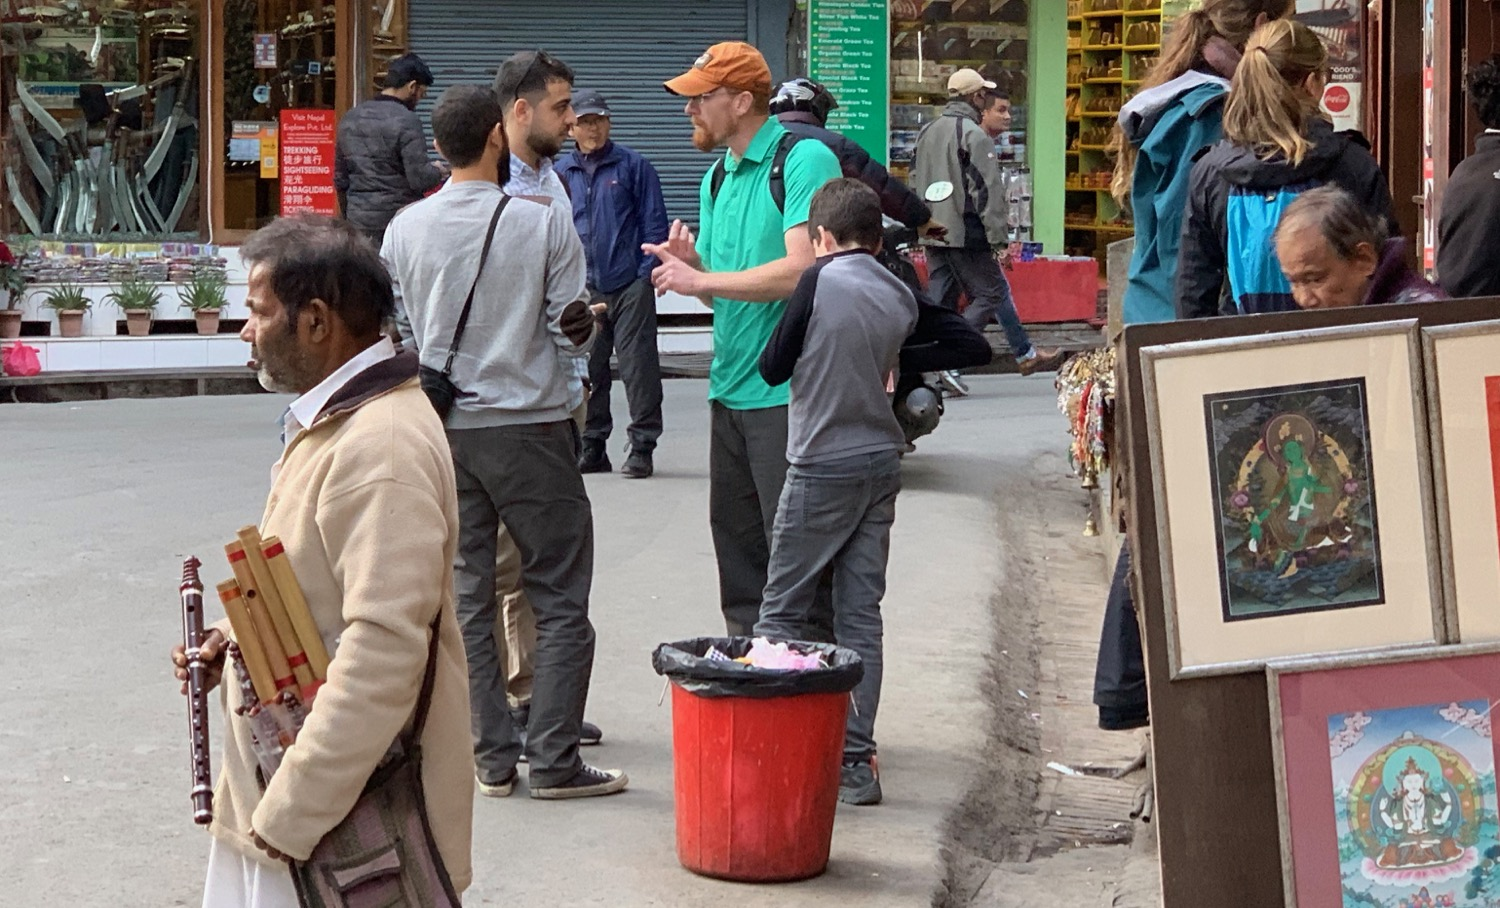 In Kathmandu's Thamel, God's Word is shared with two Arabic young men from Jordan, Israel's neighbor.